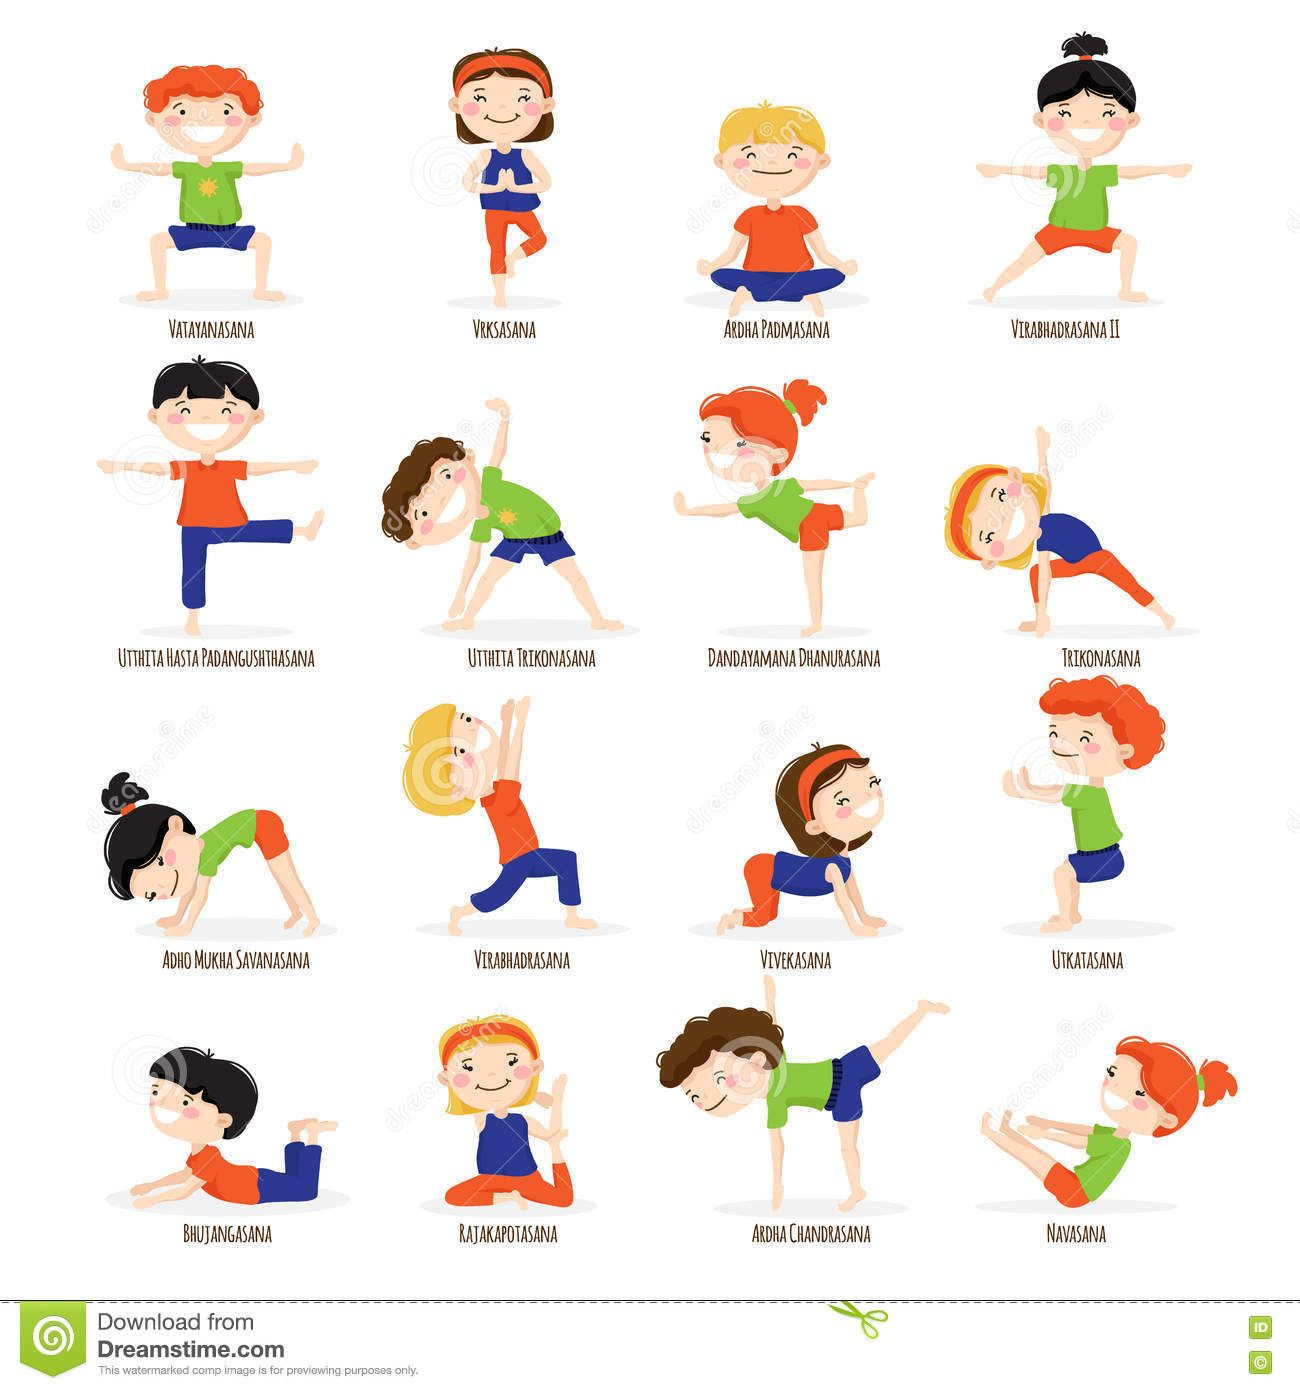 kids children yoga poses cartoon set download from over 65 million high quality stock